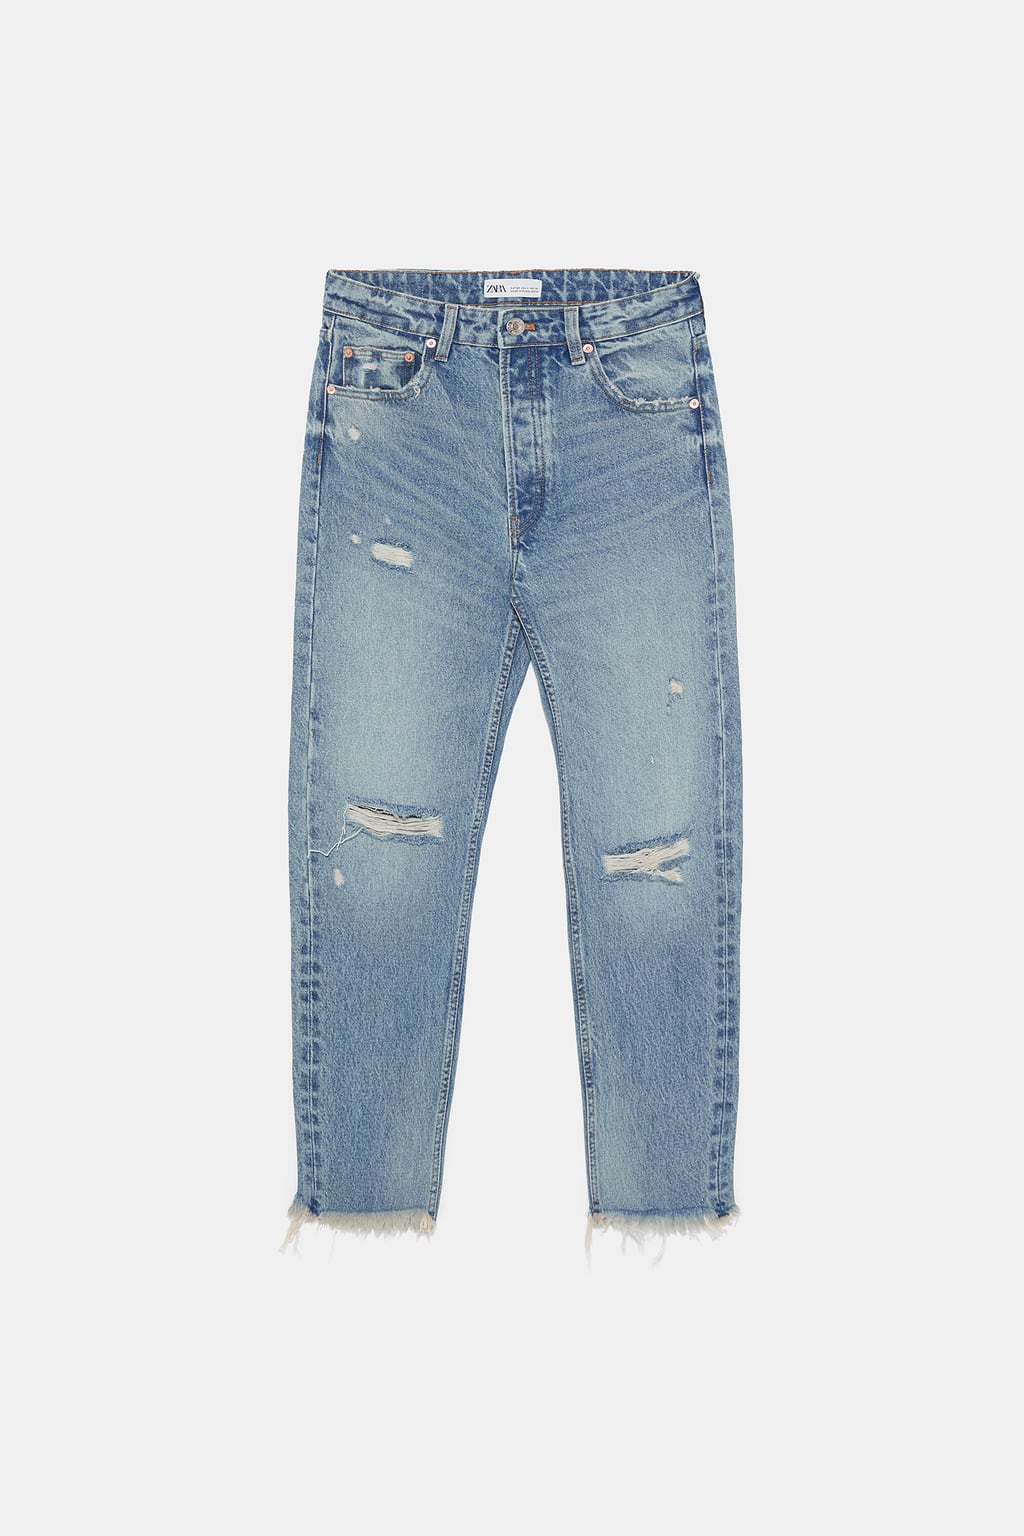 STRAIGHT LEG MID-RISE JEANS DETAILS 39.90 USD